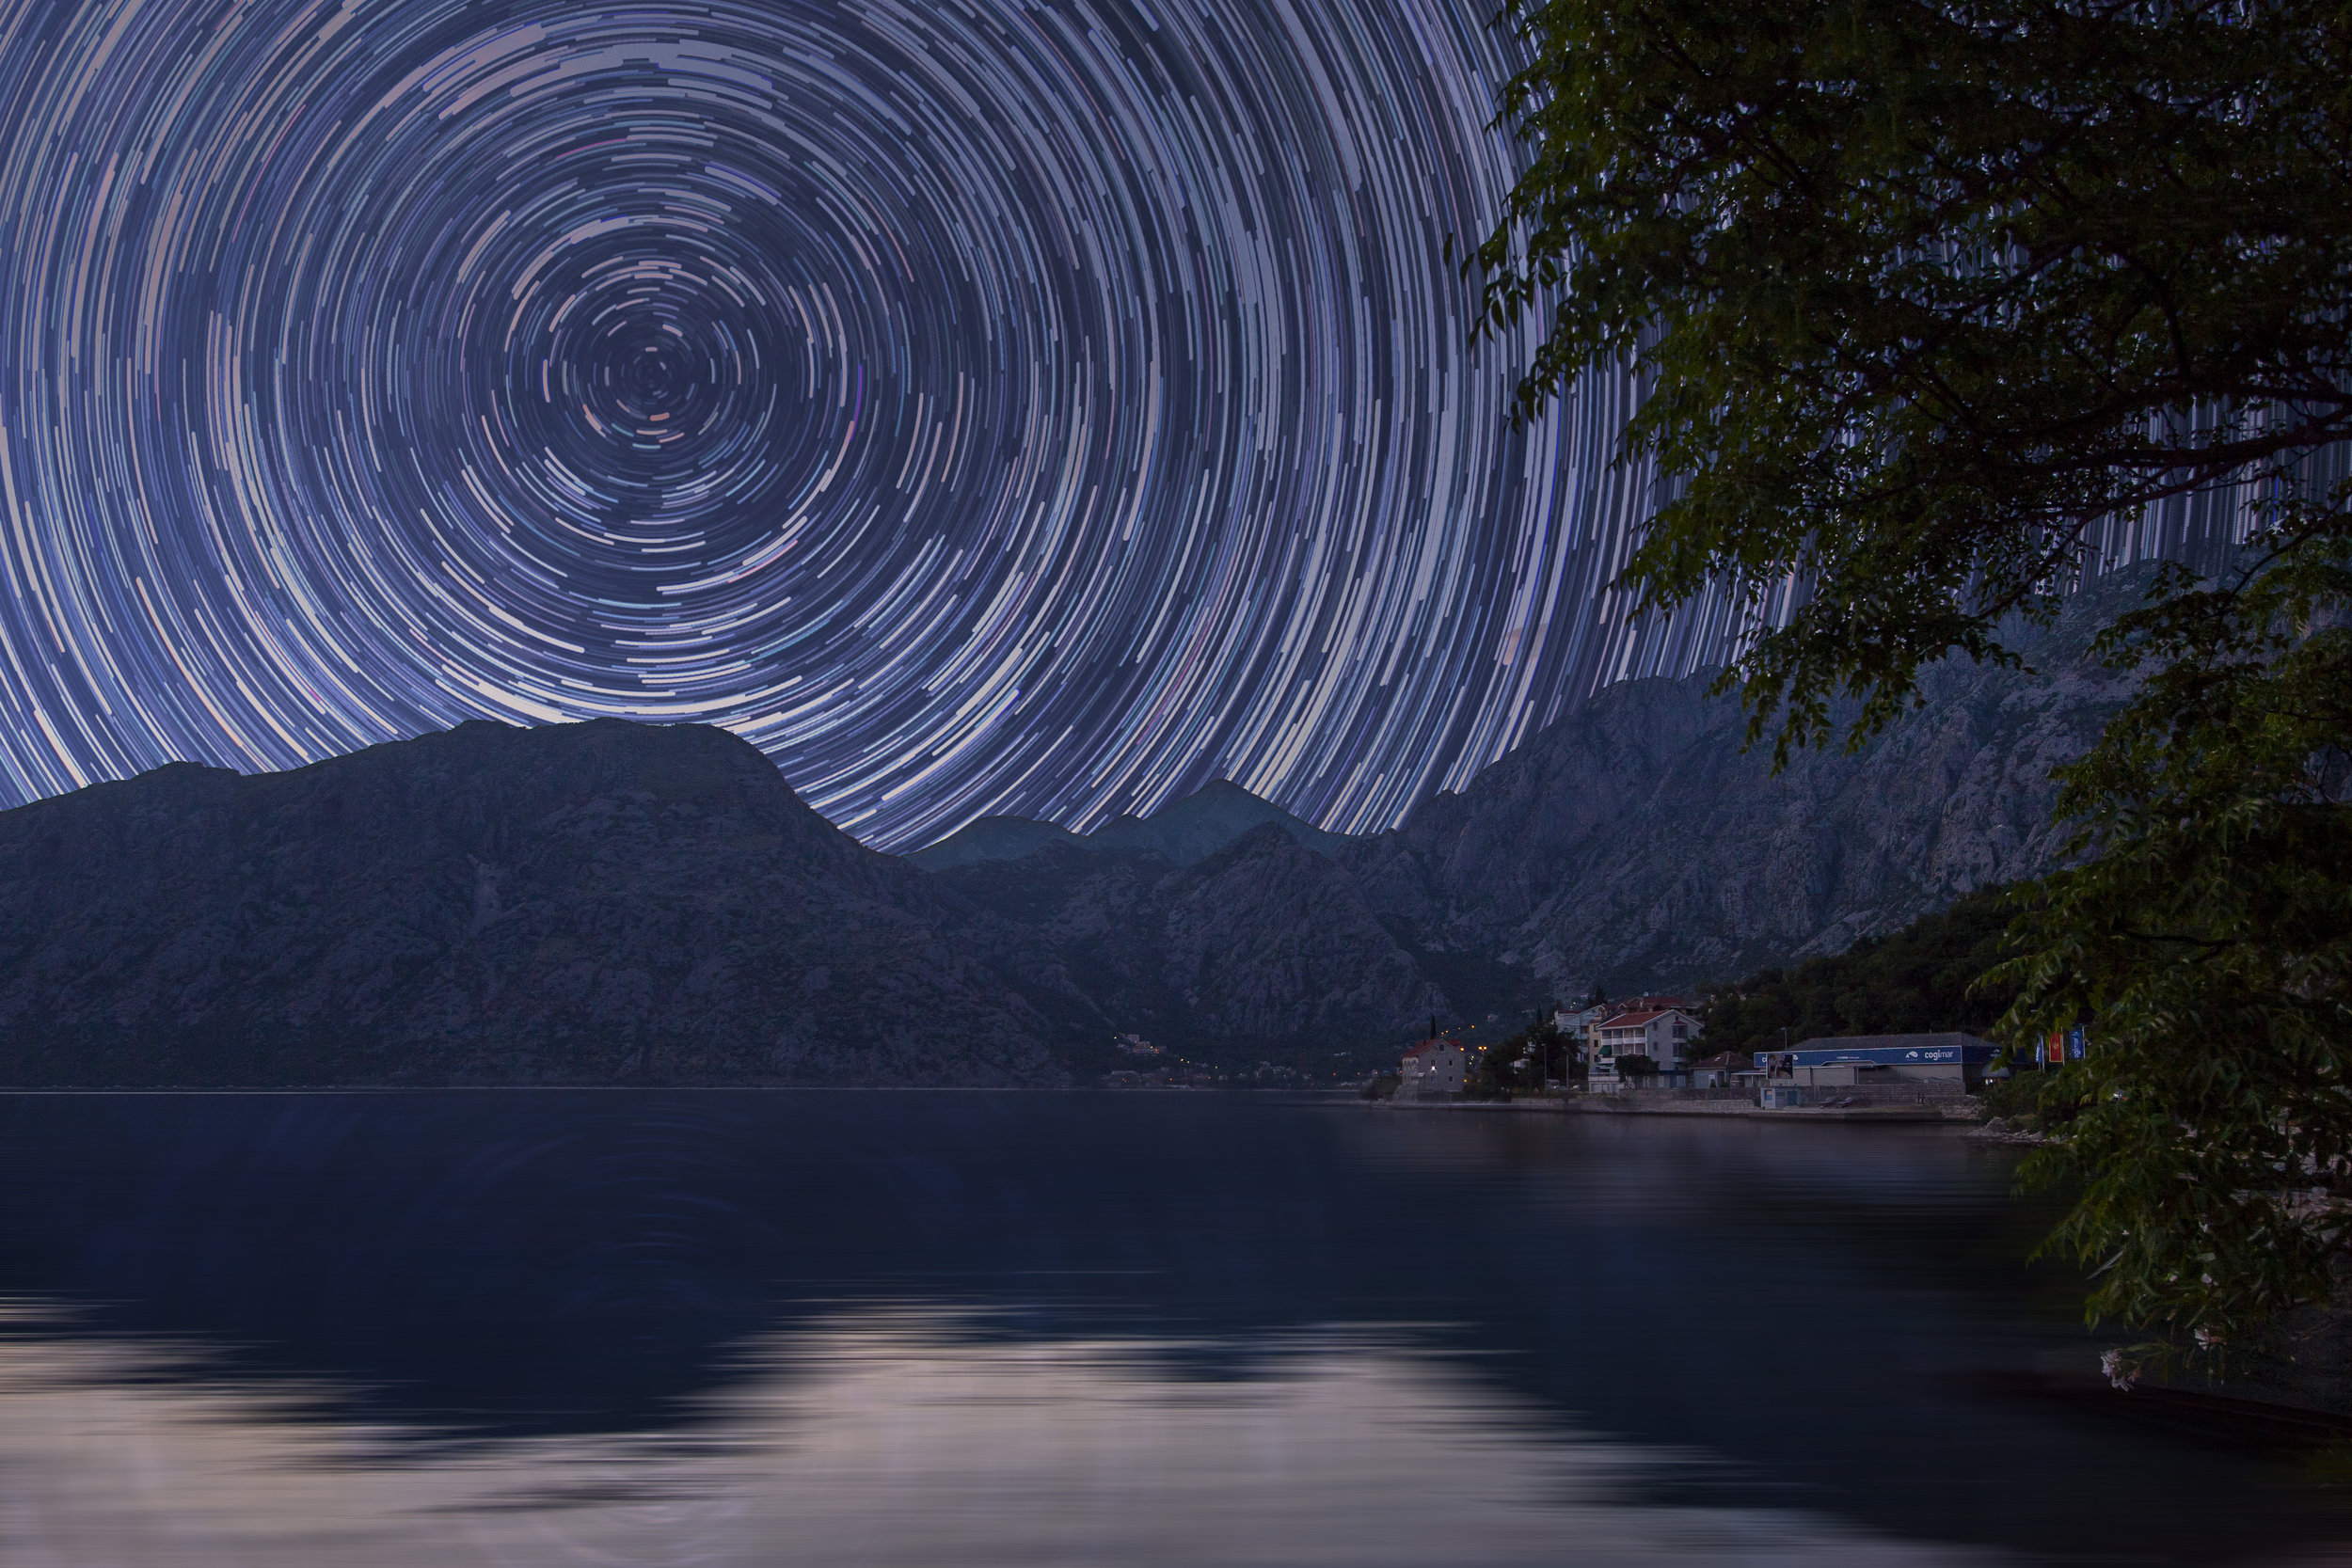 Timelapse photo of the night sky with circular streaks following the path of stars